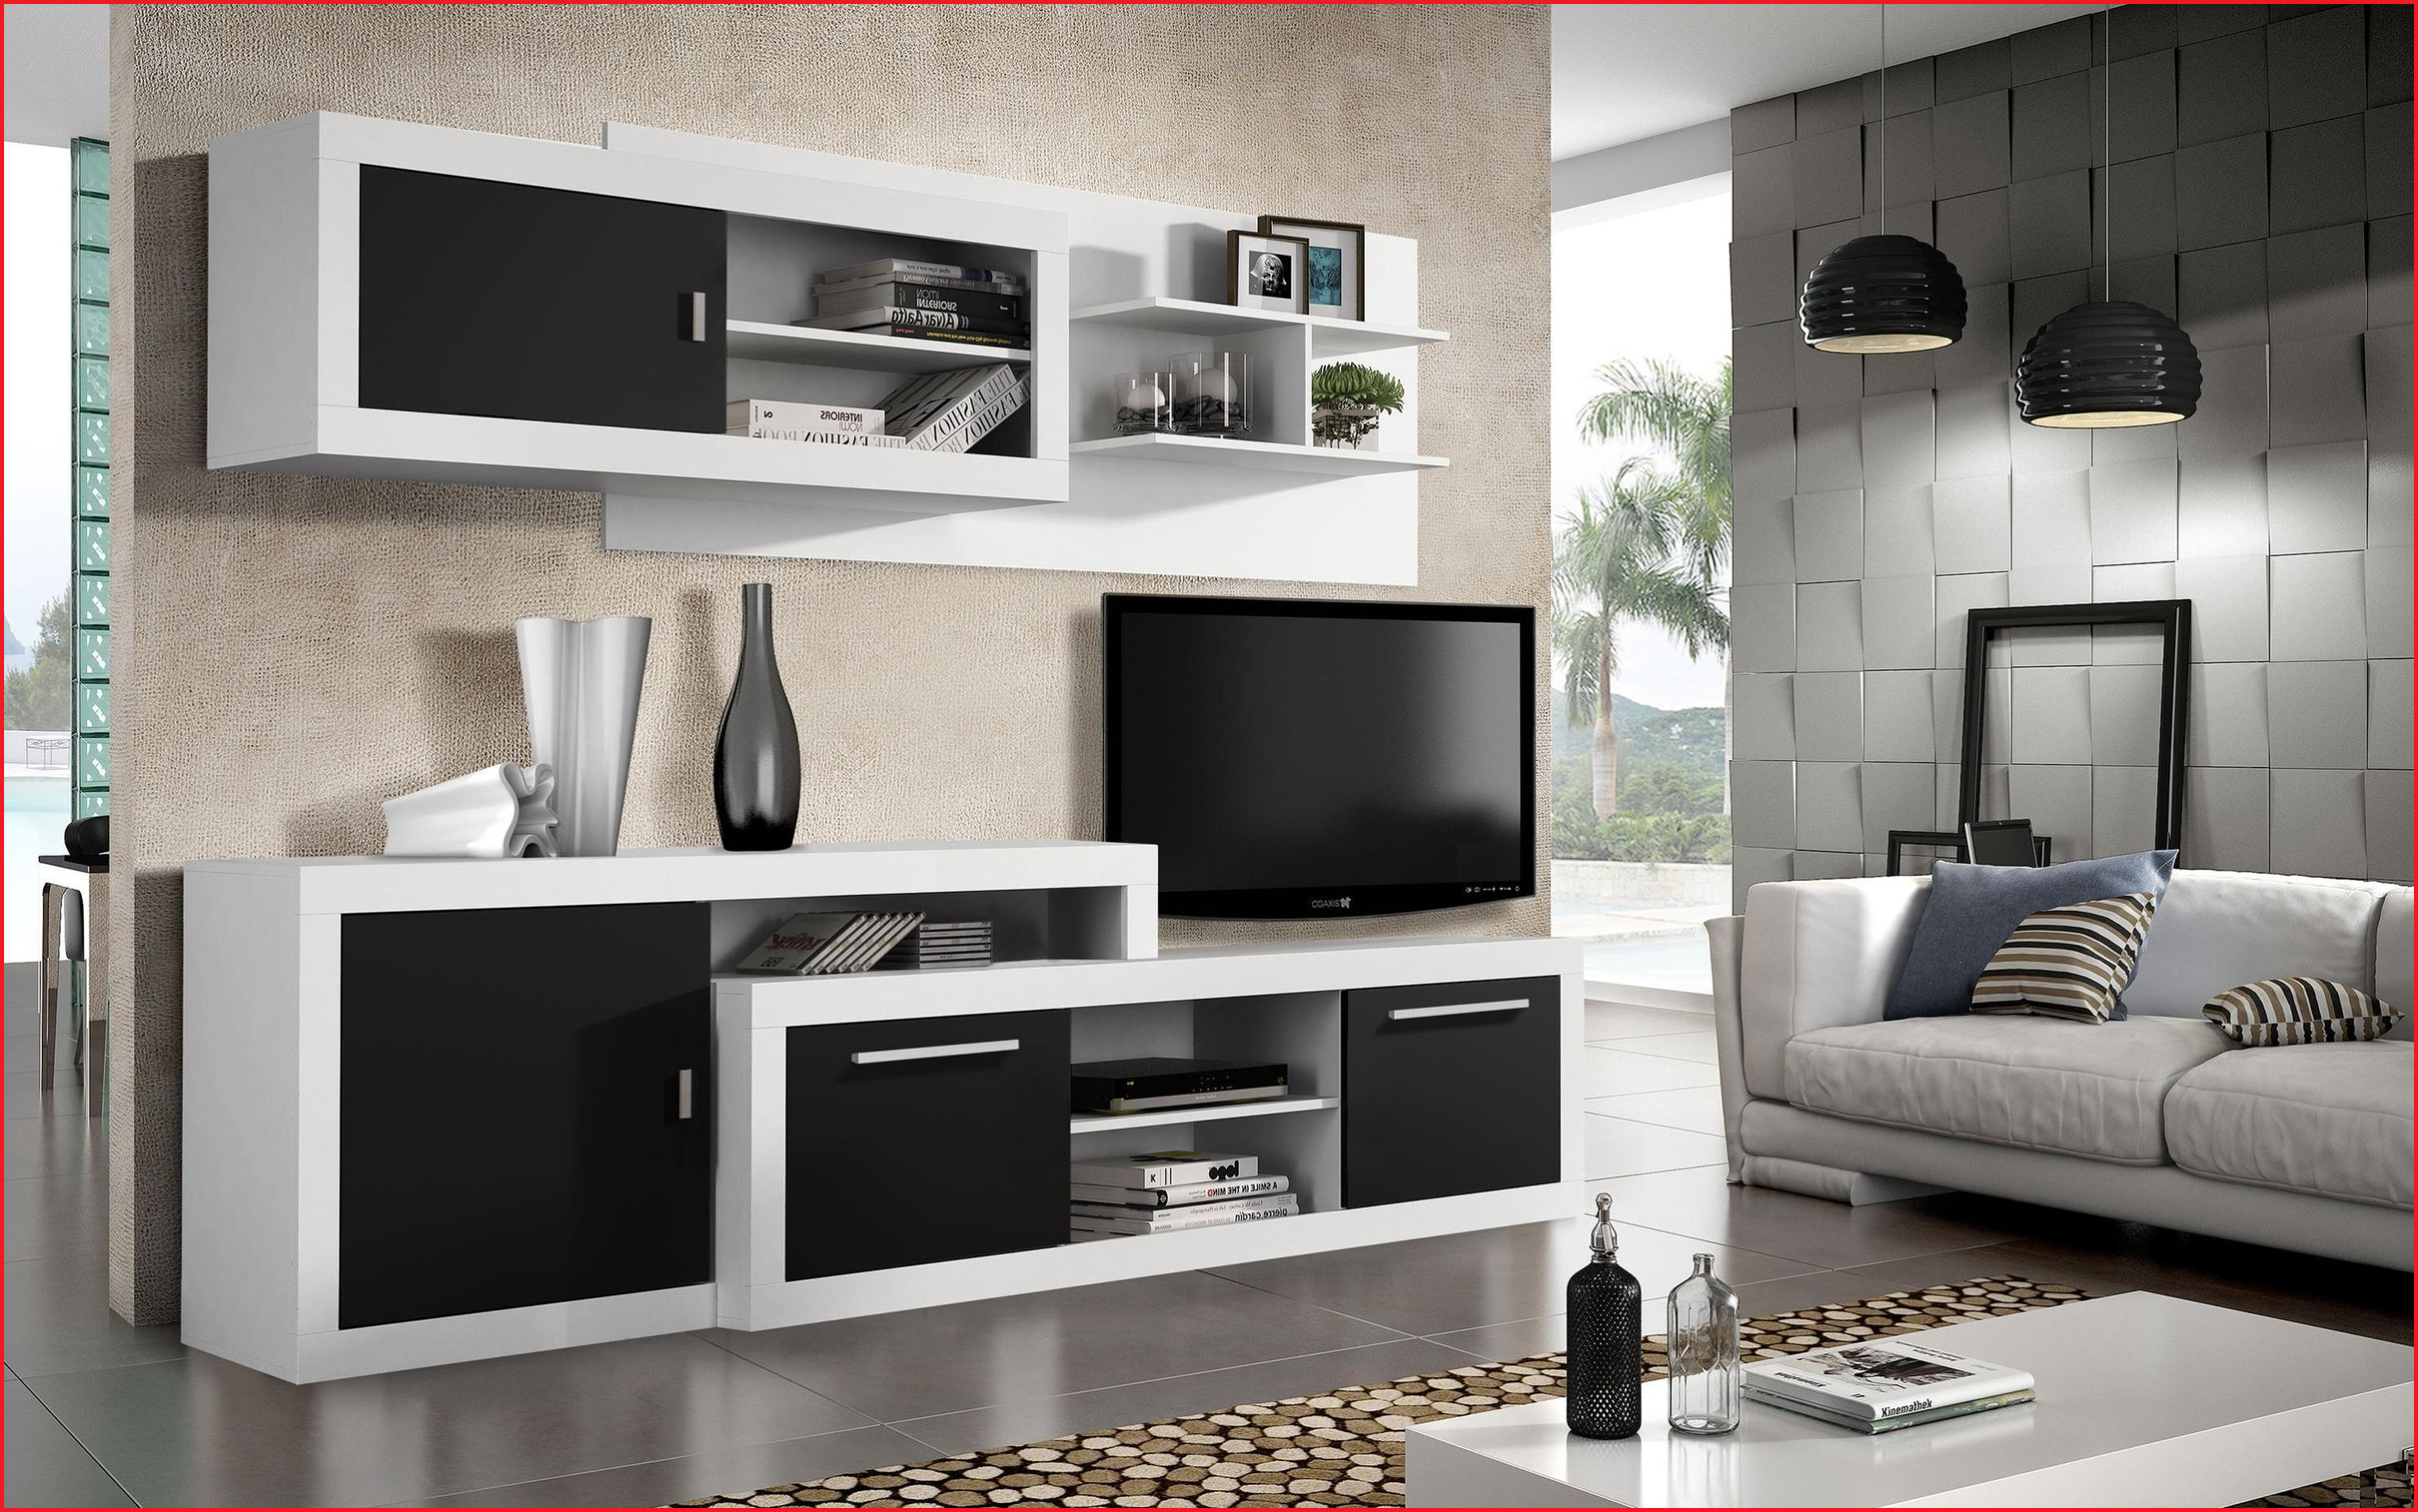 Muebles De Baño Online Outlet Zwdg Muebles Archives Page 11 Of 518 Arsenalsupremo